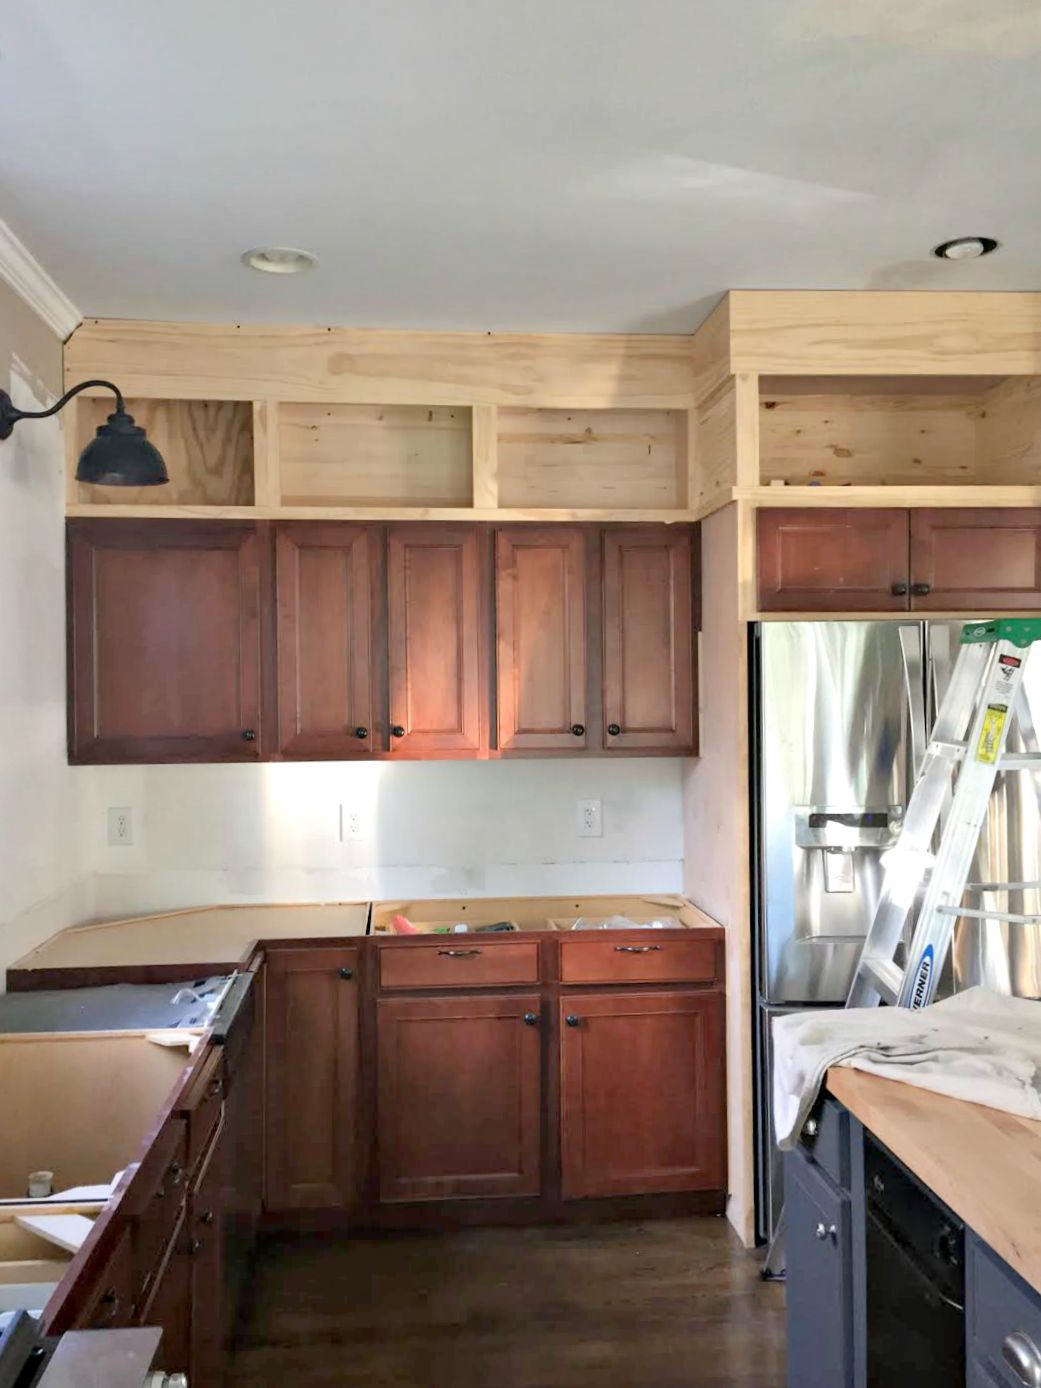 Ceiling Kitchen Building Cabinets Up To The Ceiling From Thrifty Decor Chick